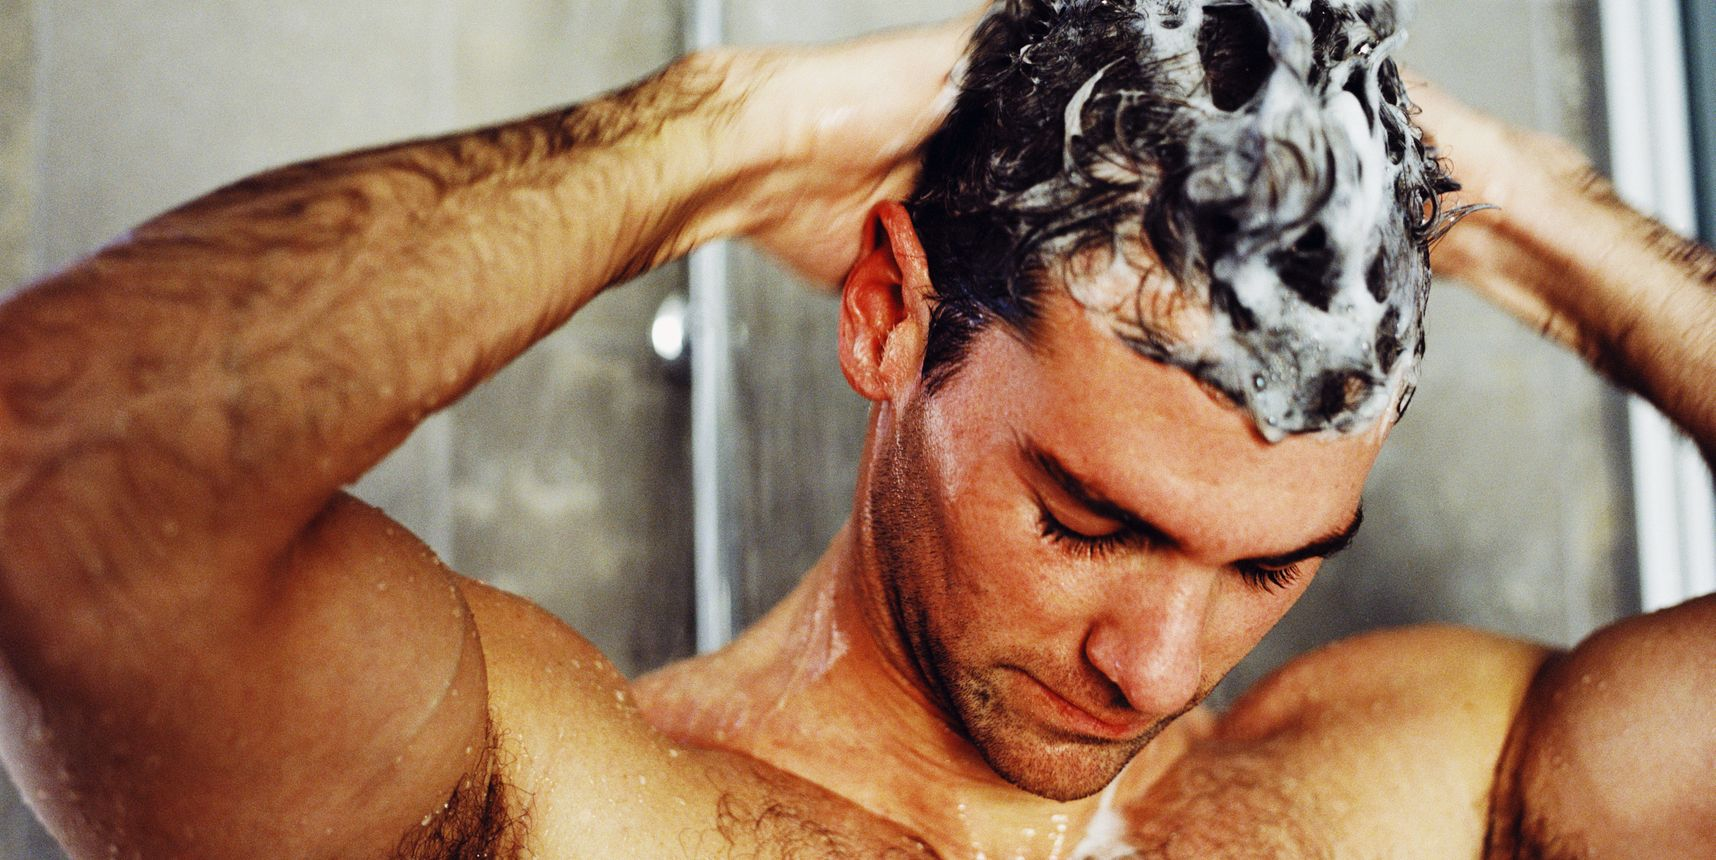 close-up of a man washing his hair in the shower